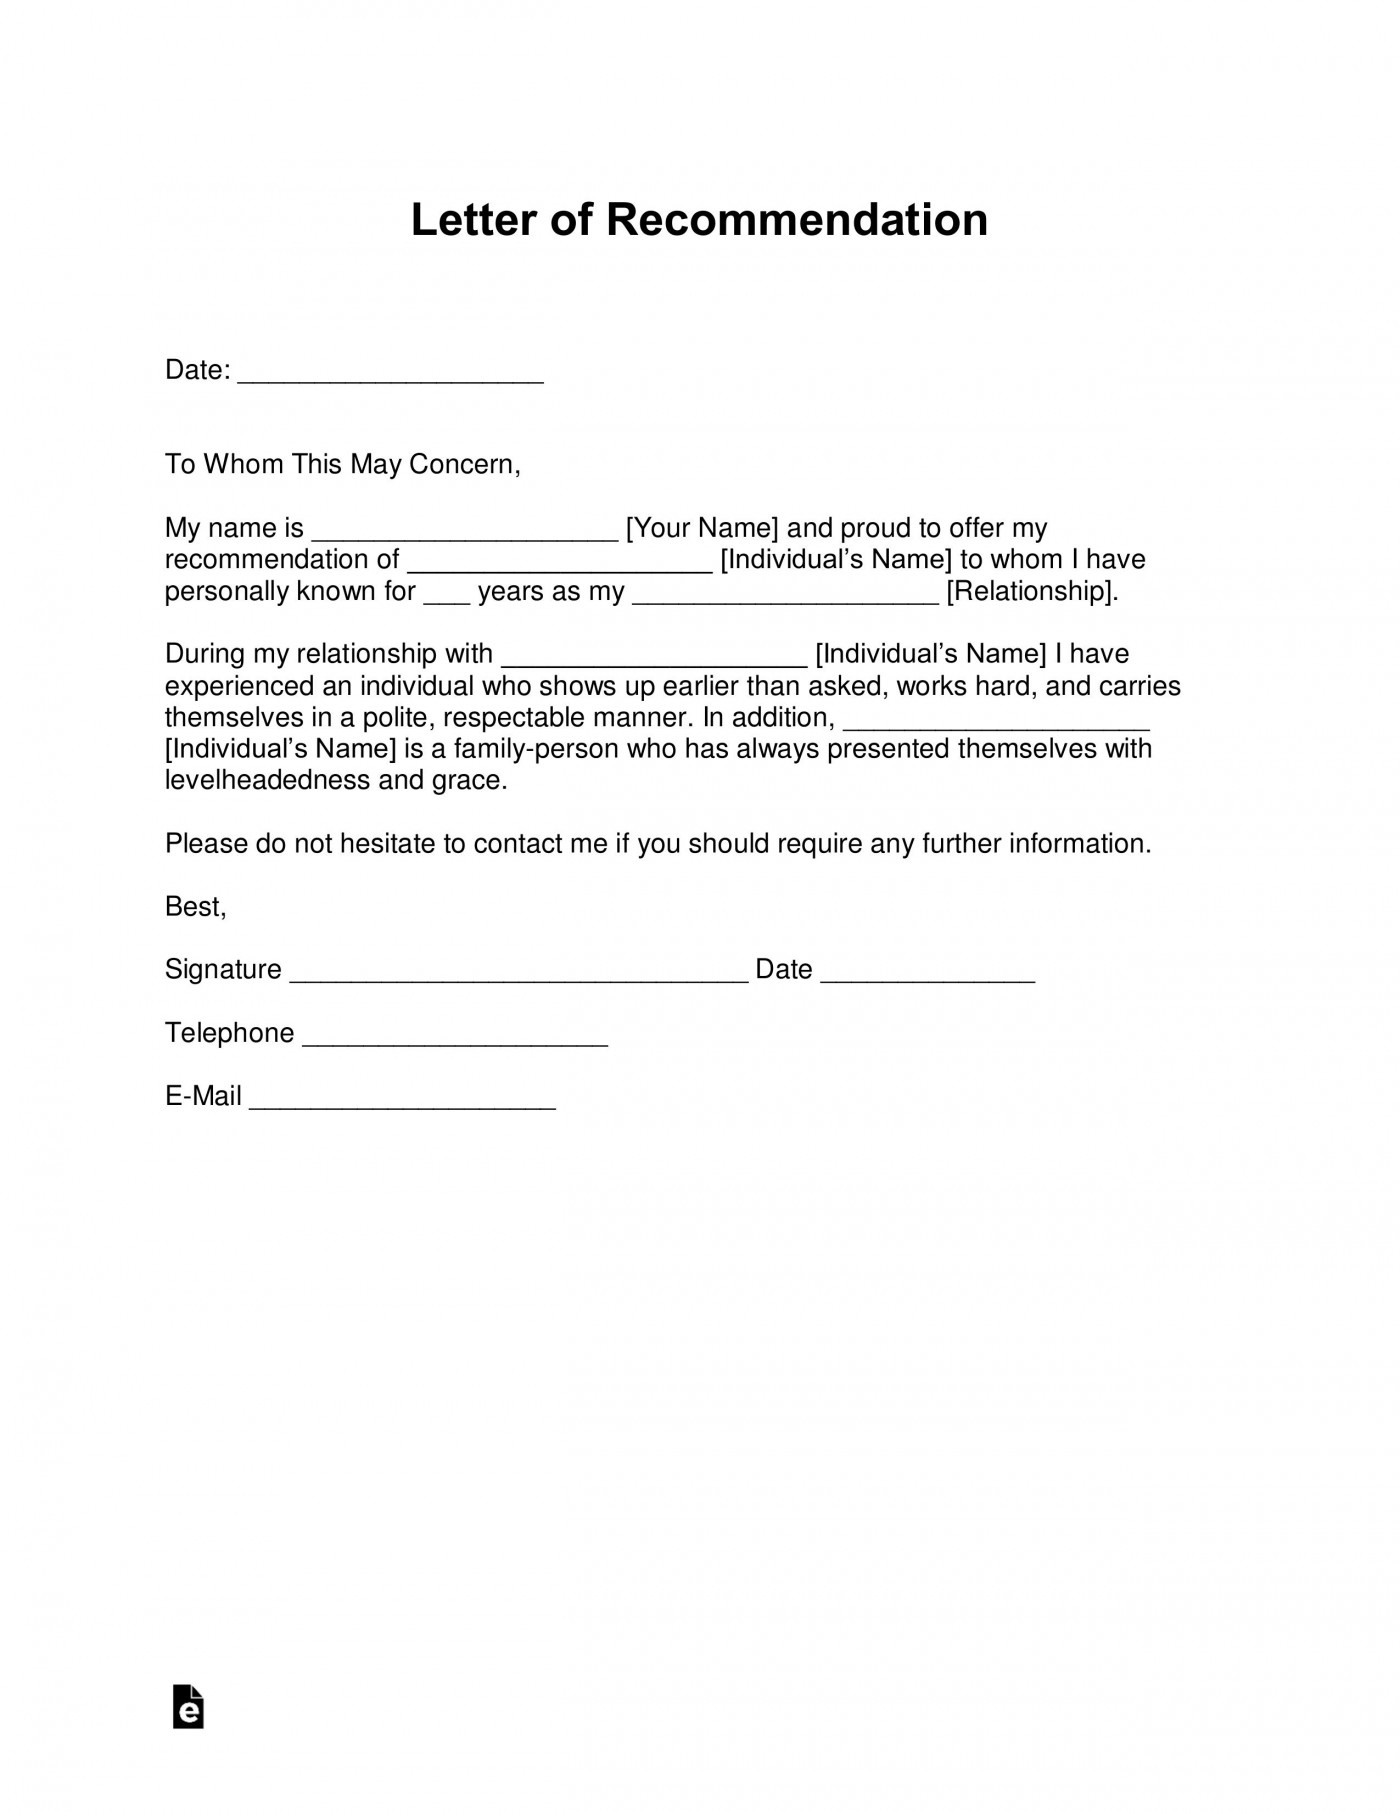 008 Outstanding Letter Of Recomendation Template Picture  Reference For Employment Sample Recommendation Teacher Student From Employer1400